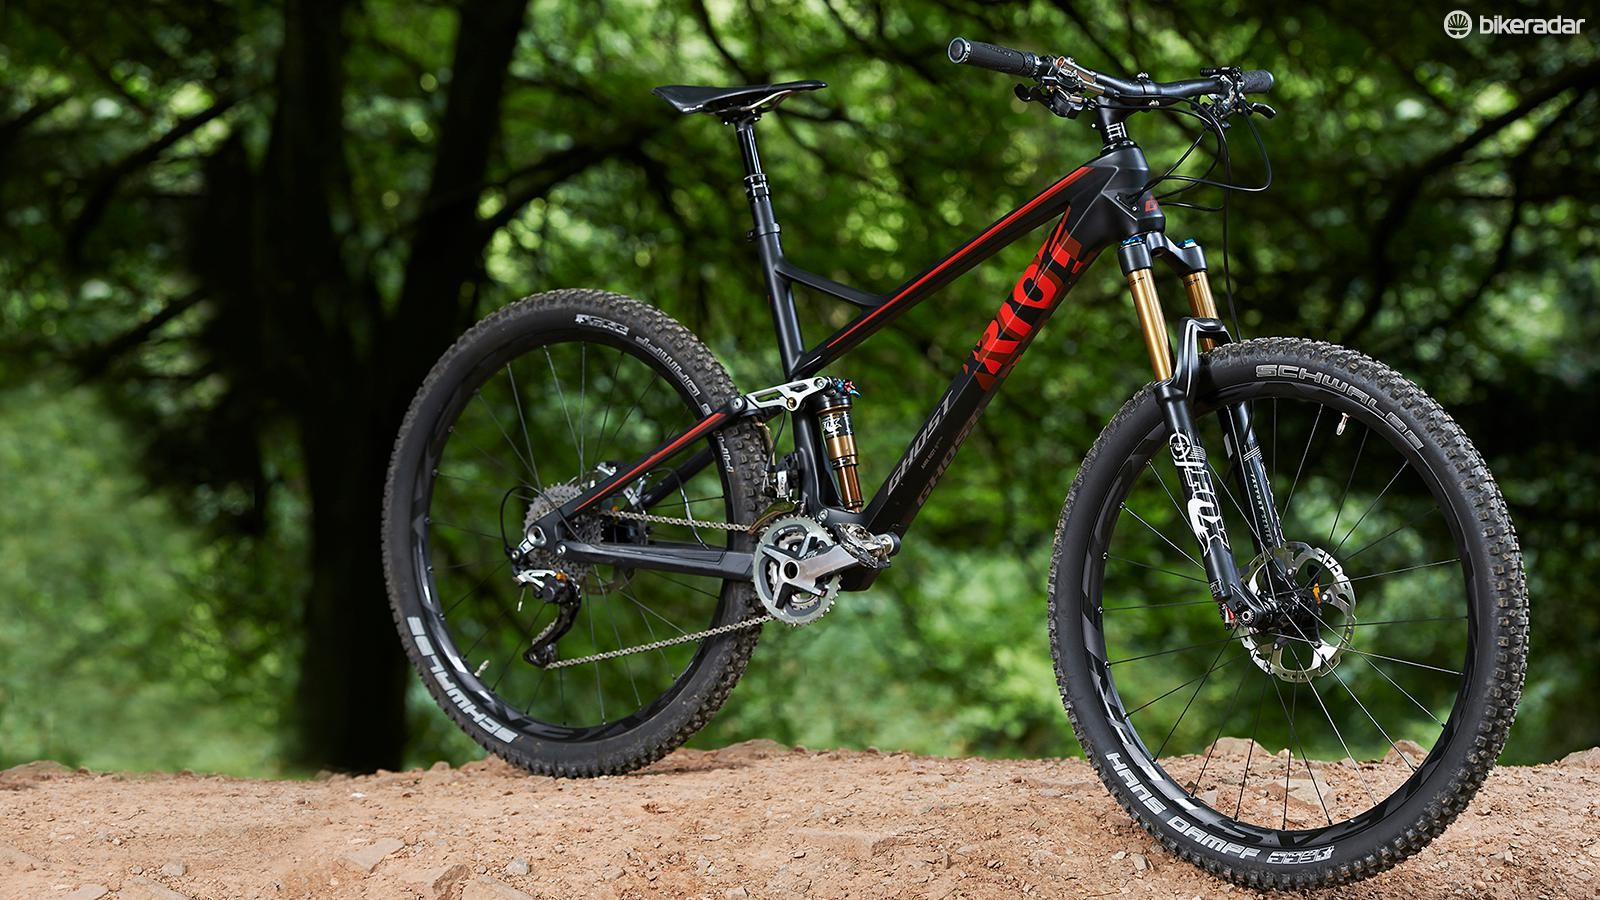 Ghost AMR Riot Lector 9 –not the big hitter that the name might suggest